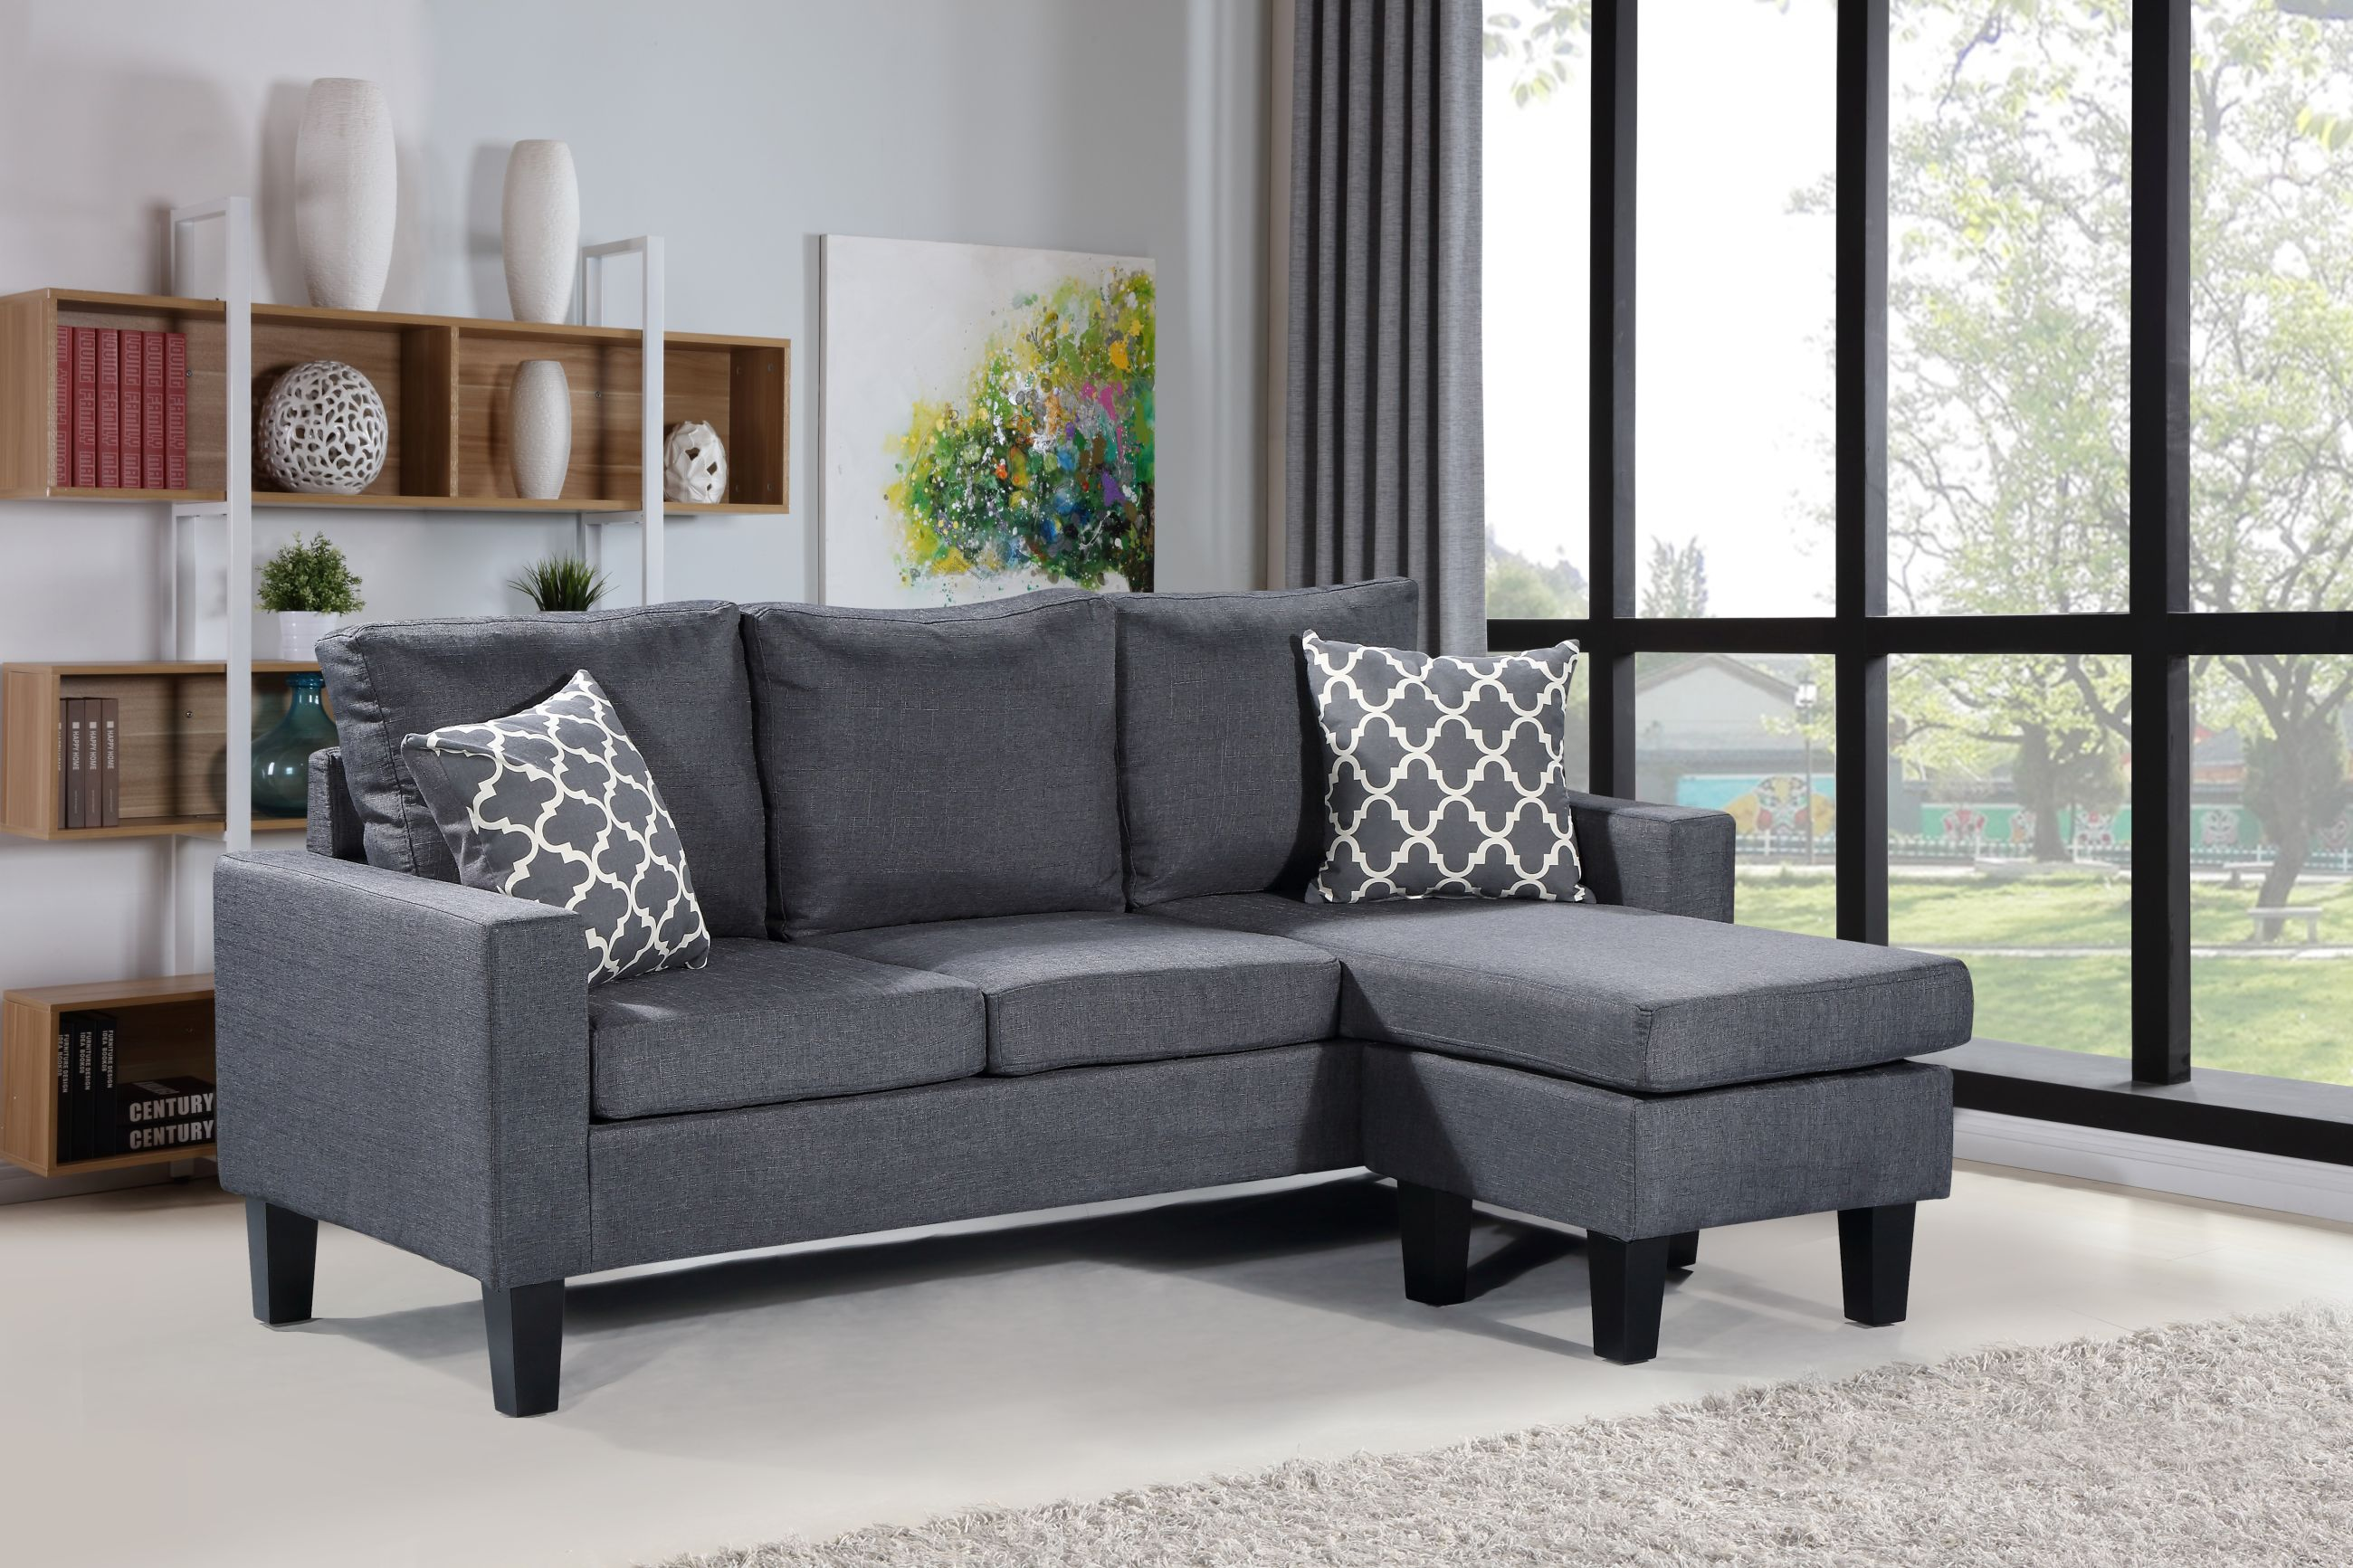 HS276 Husky Furniture BELLA Reverseable Sectional Sofa Gray